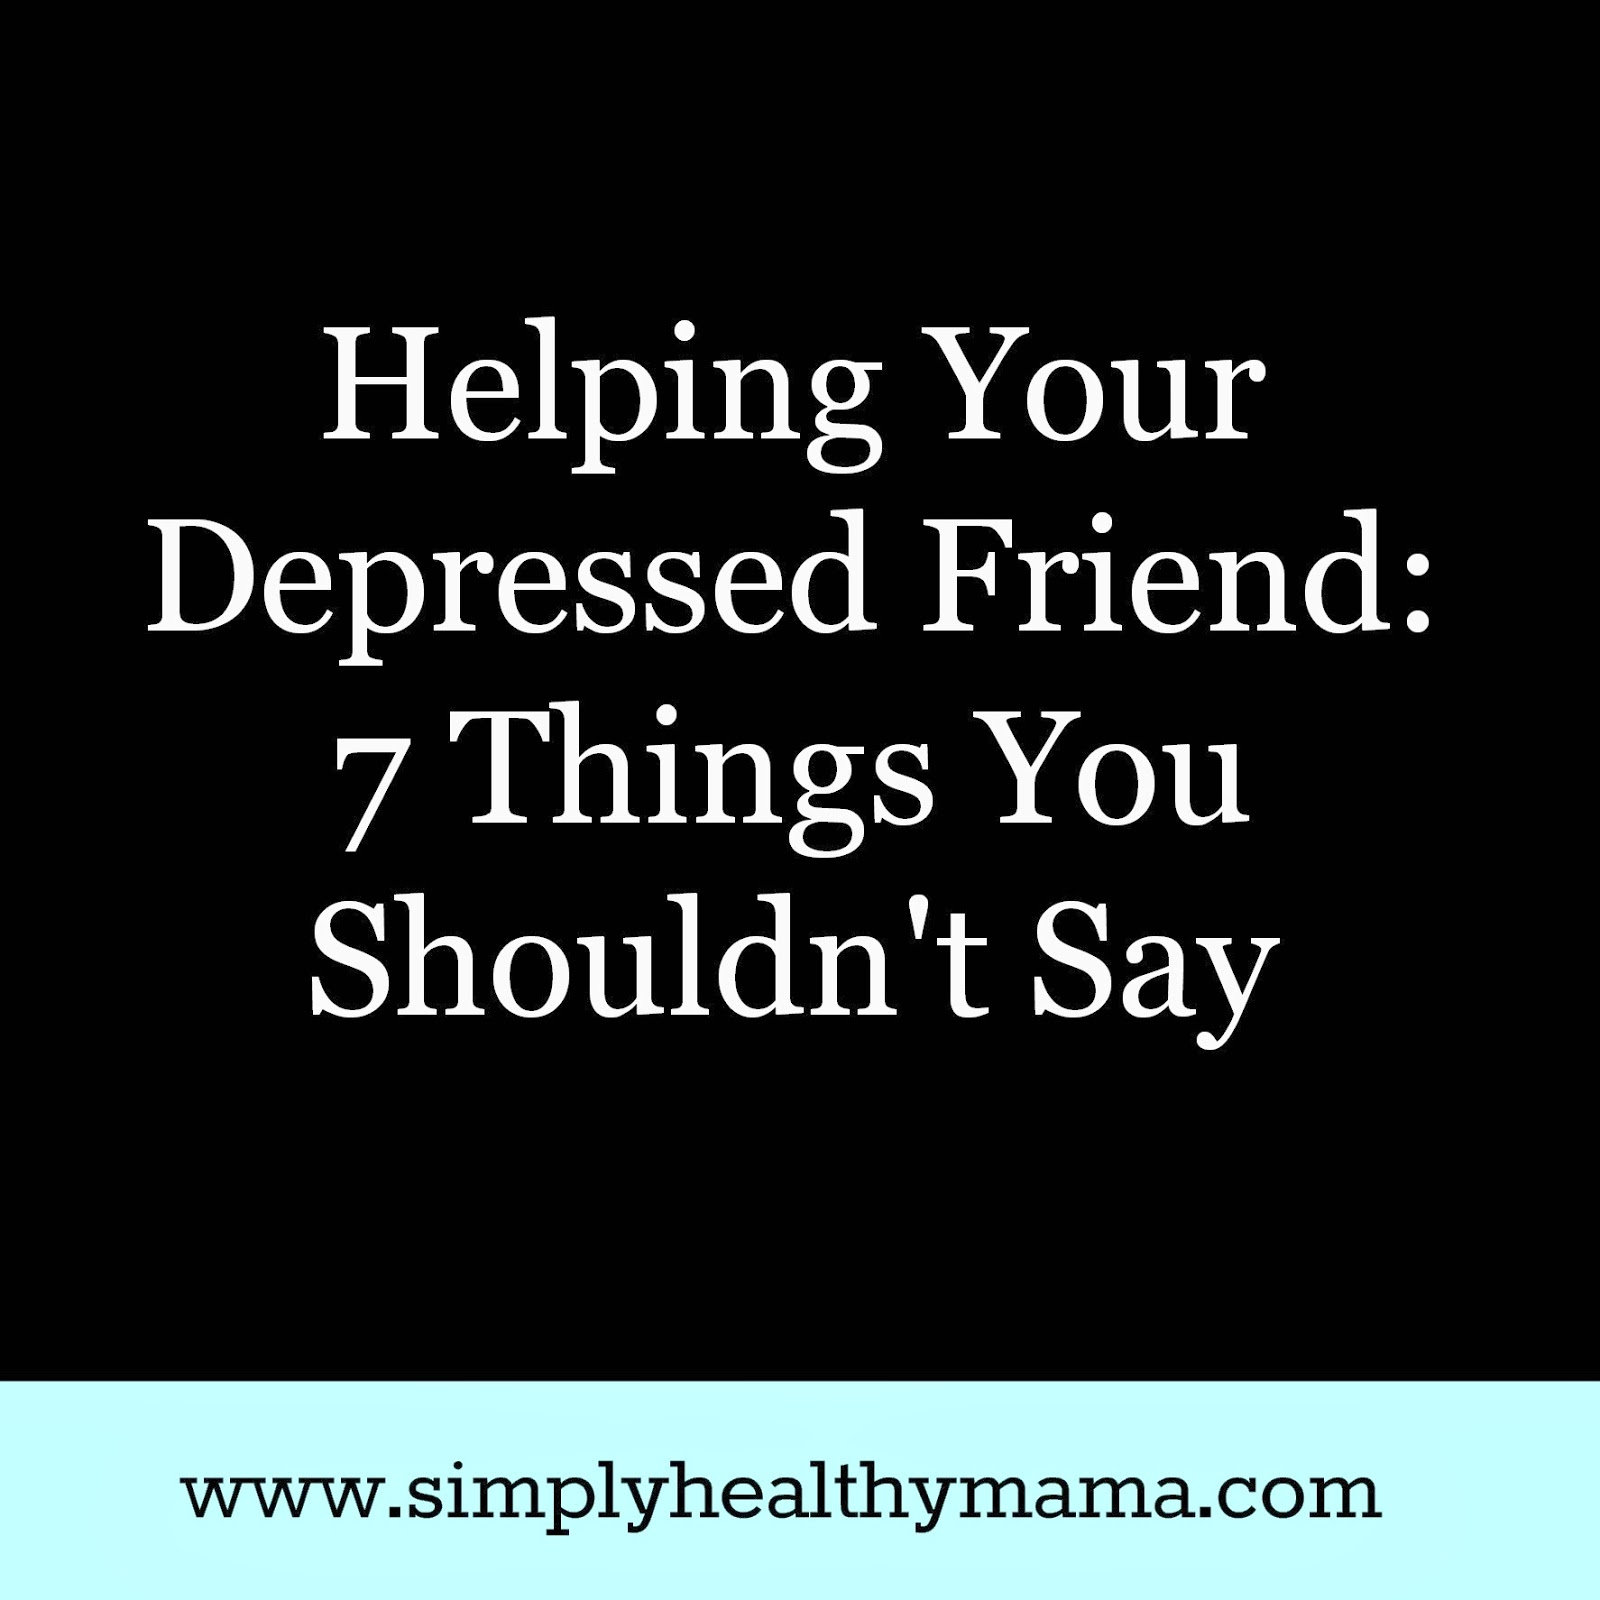 Quotes To Help Depression Helping Friend Depression Quotes Quotes To Help A Depressed